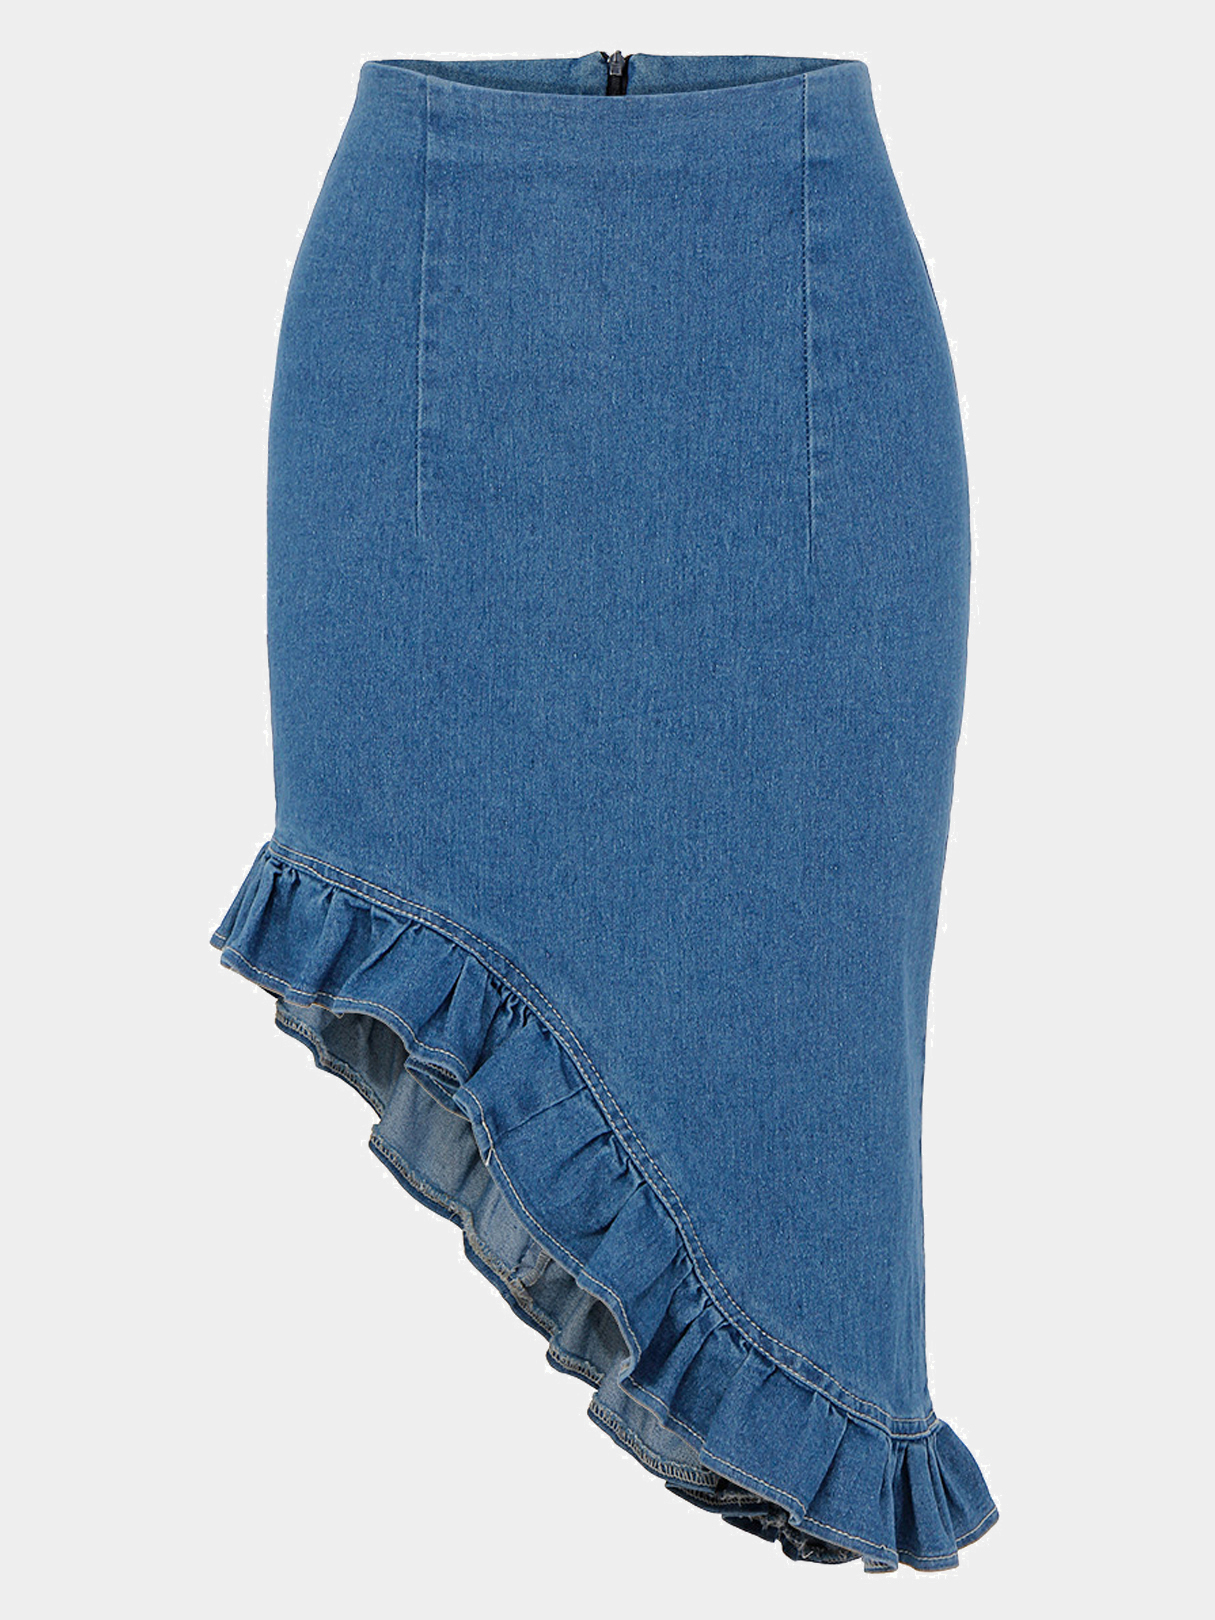 Denim Irregular Fishtail Pencil Skirt